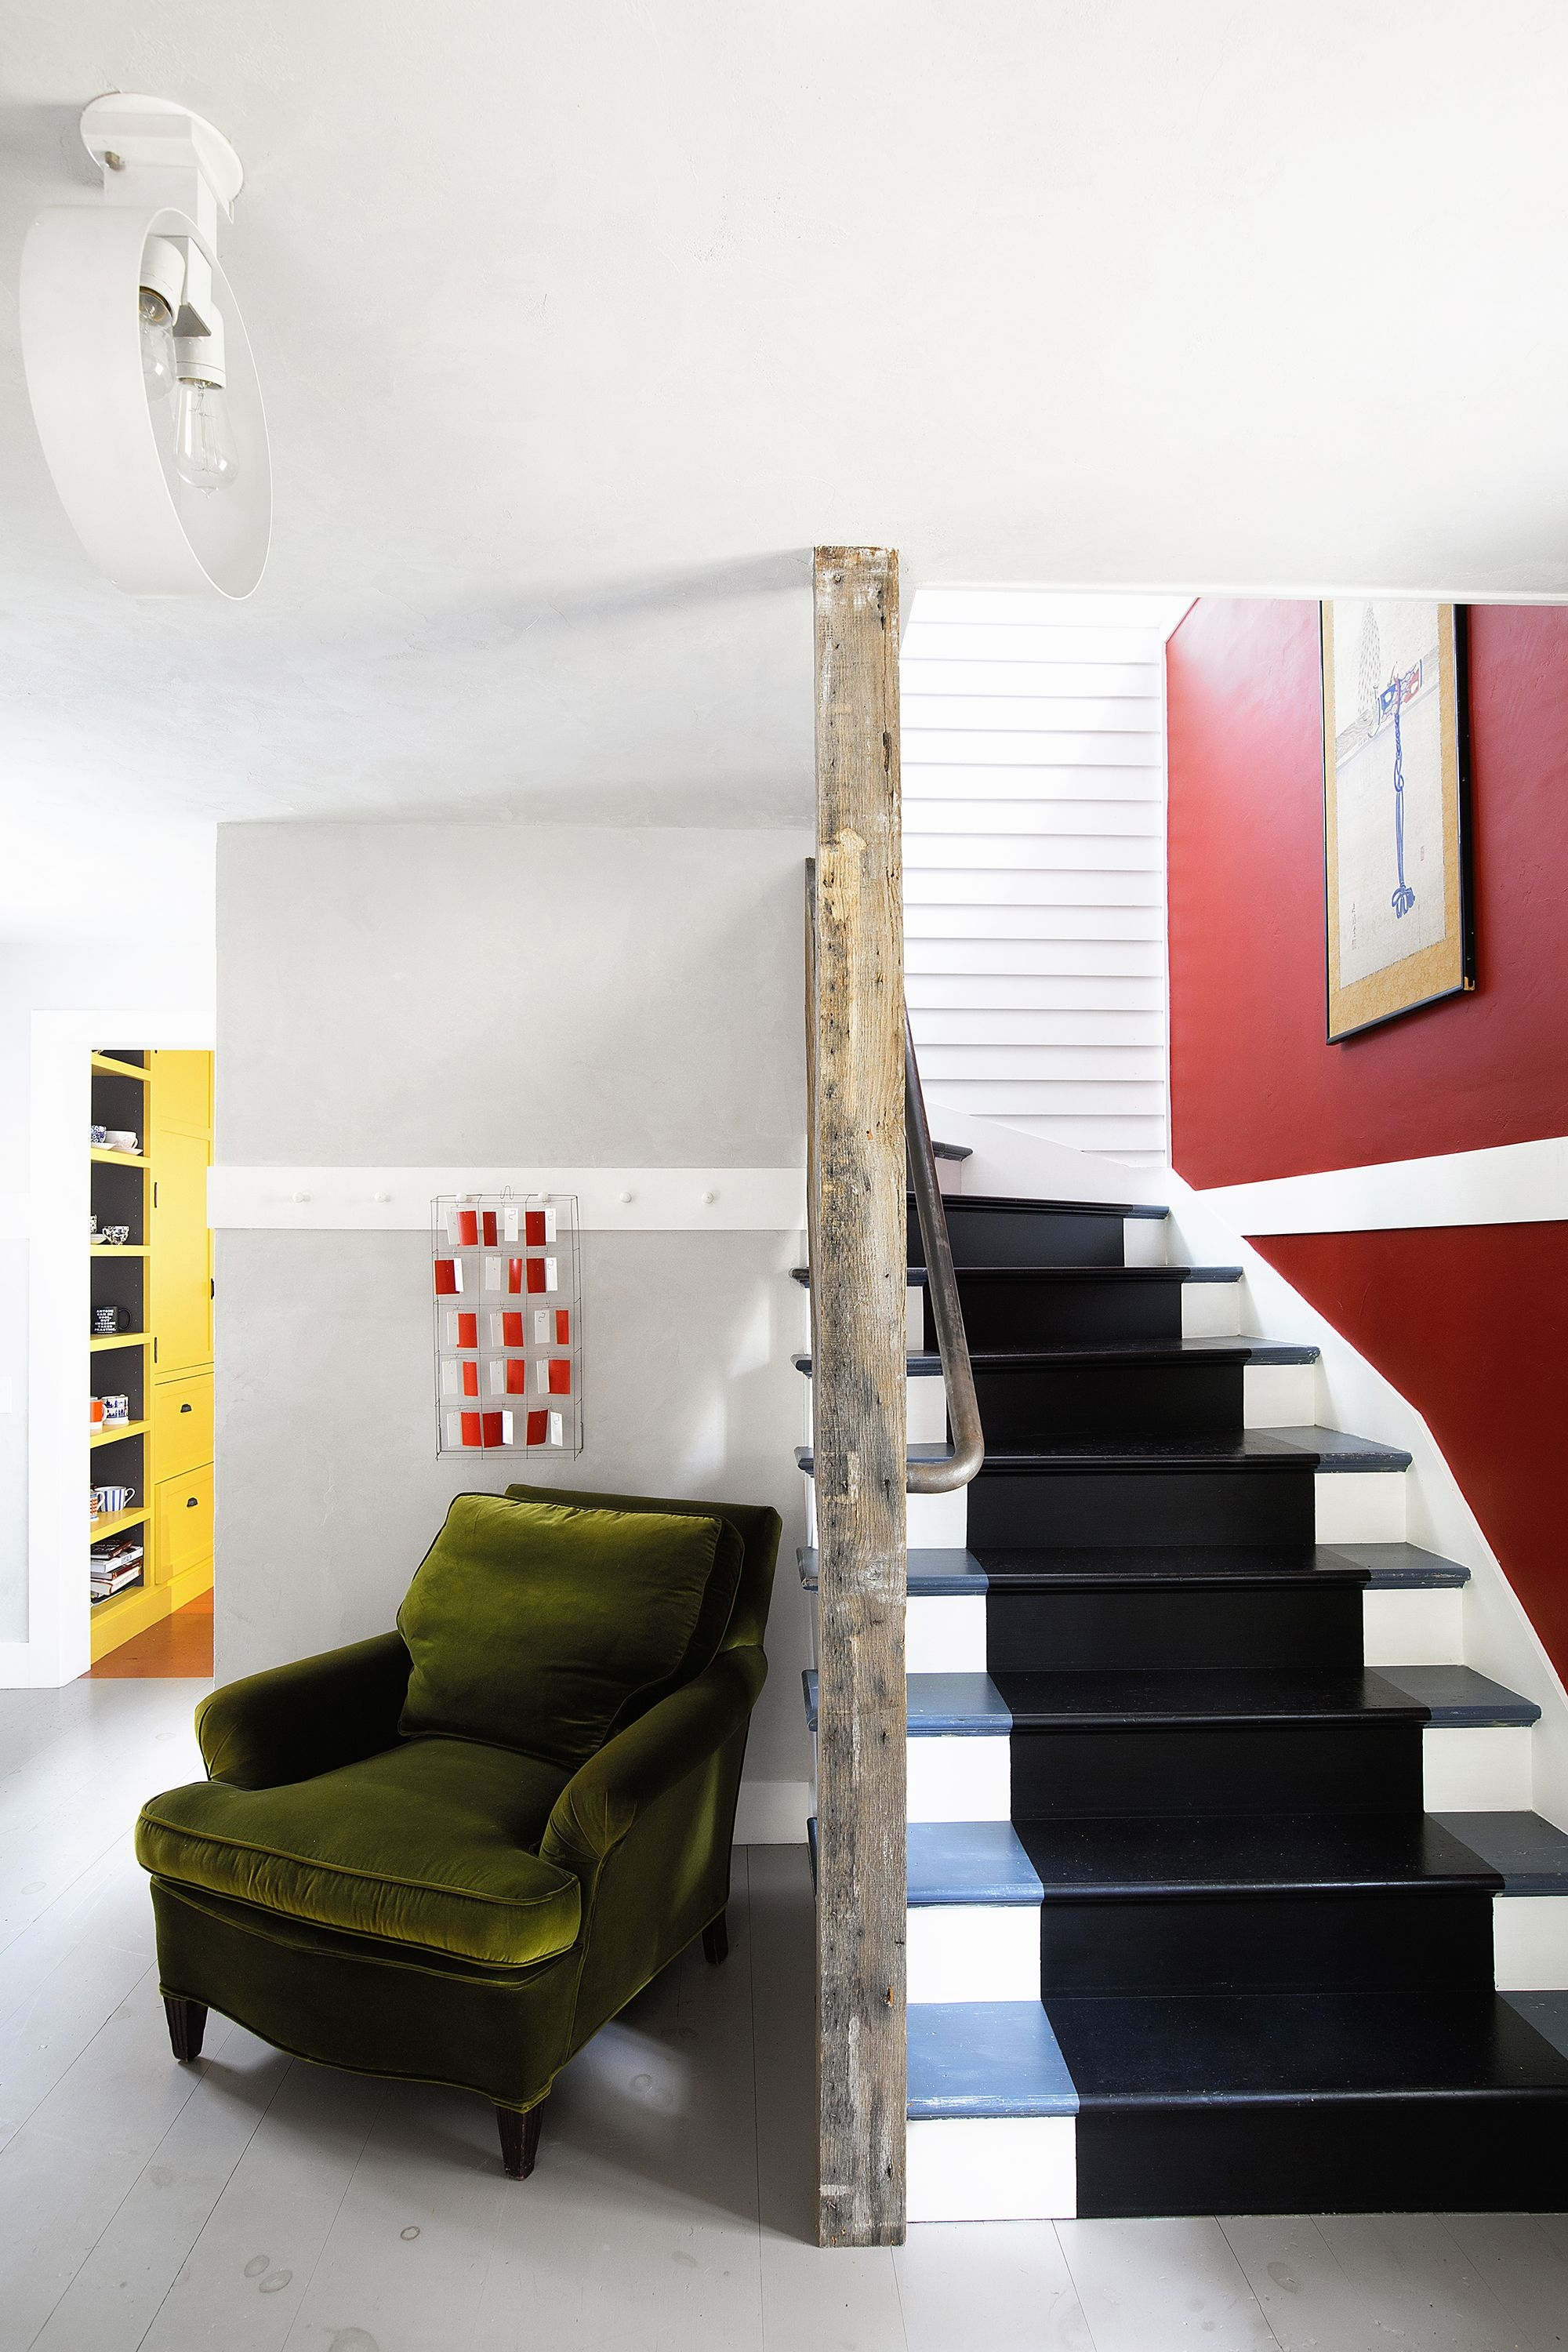 27 Stylish Staircase Decorating Ideas How To Decorate Stairways | Interior Design For Staircase Wall | Side Wall | Cladding | Outside | 2Nd Floor | Under Stair